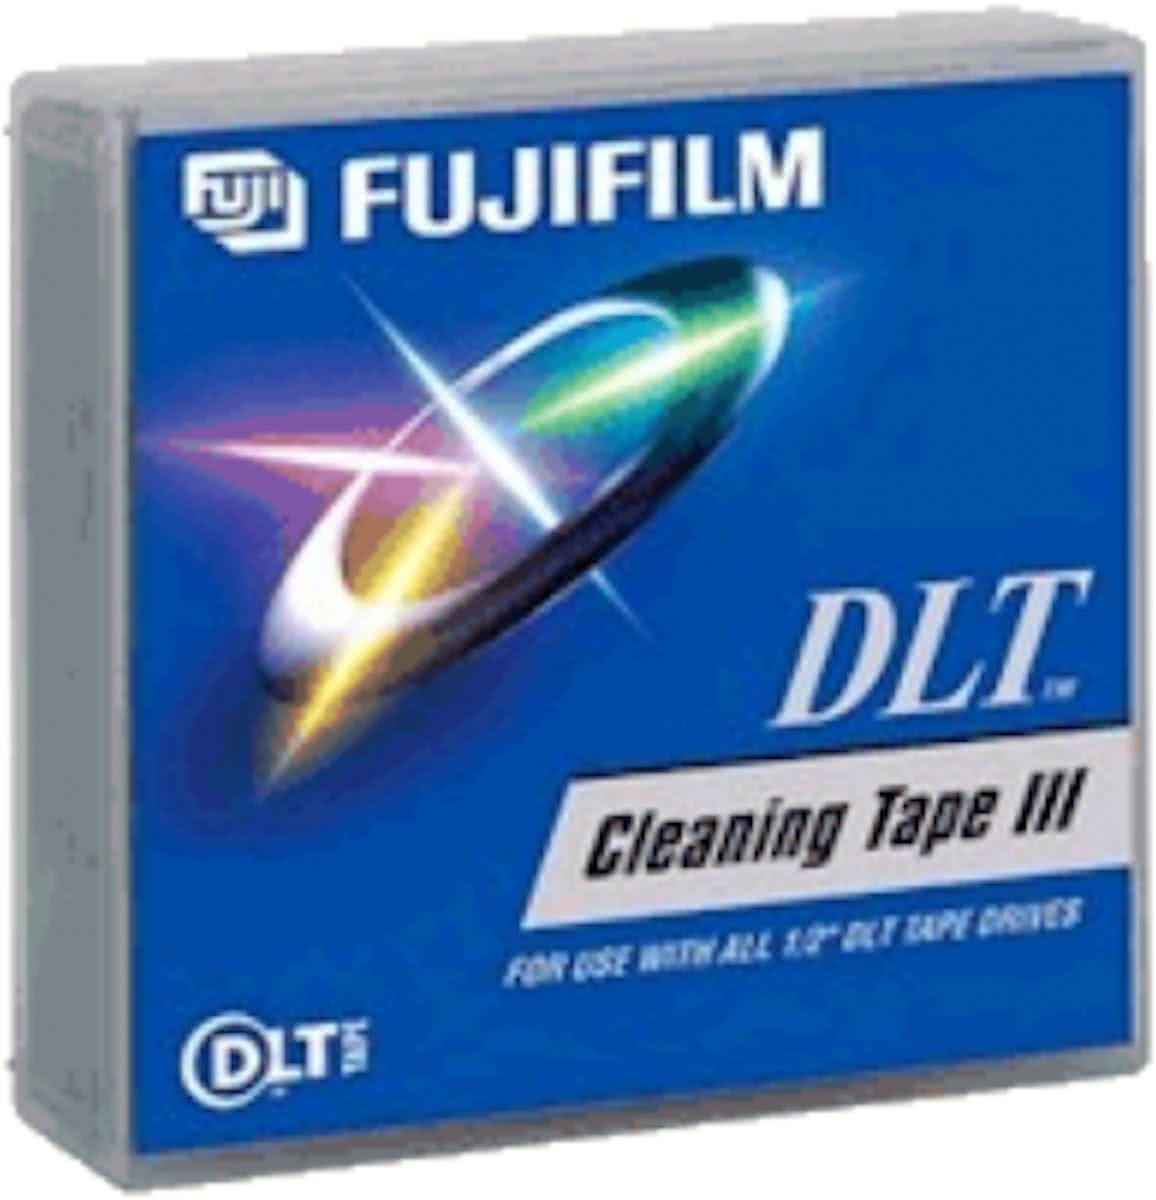 DLT IV CLEANING TAPE